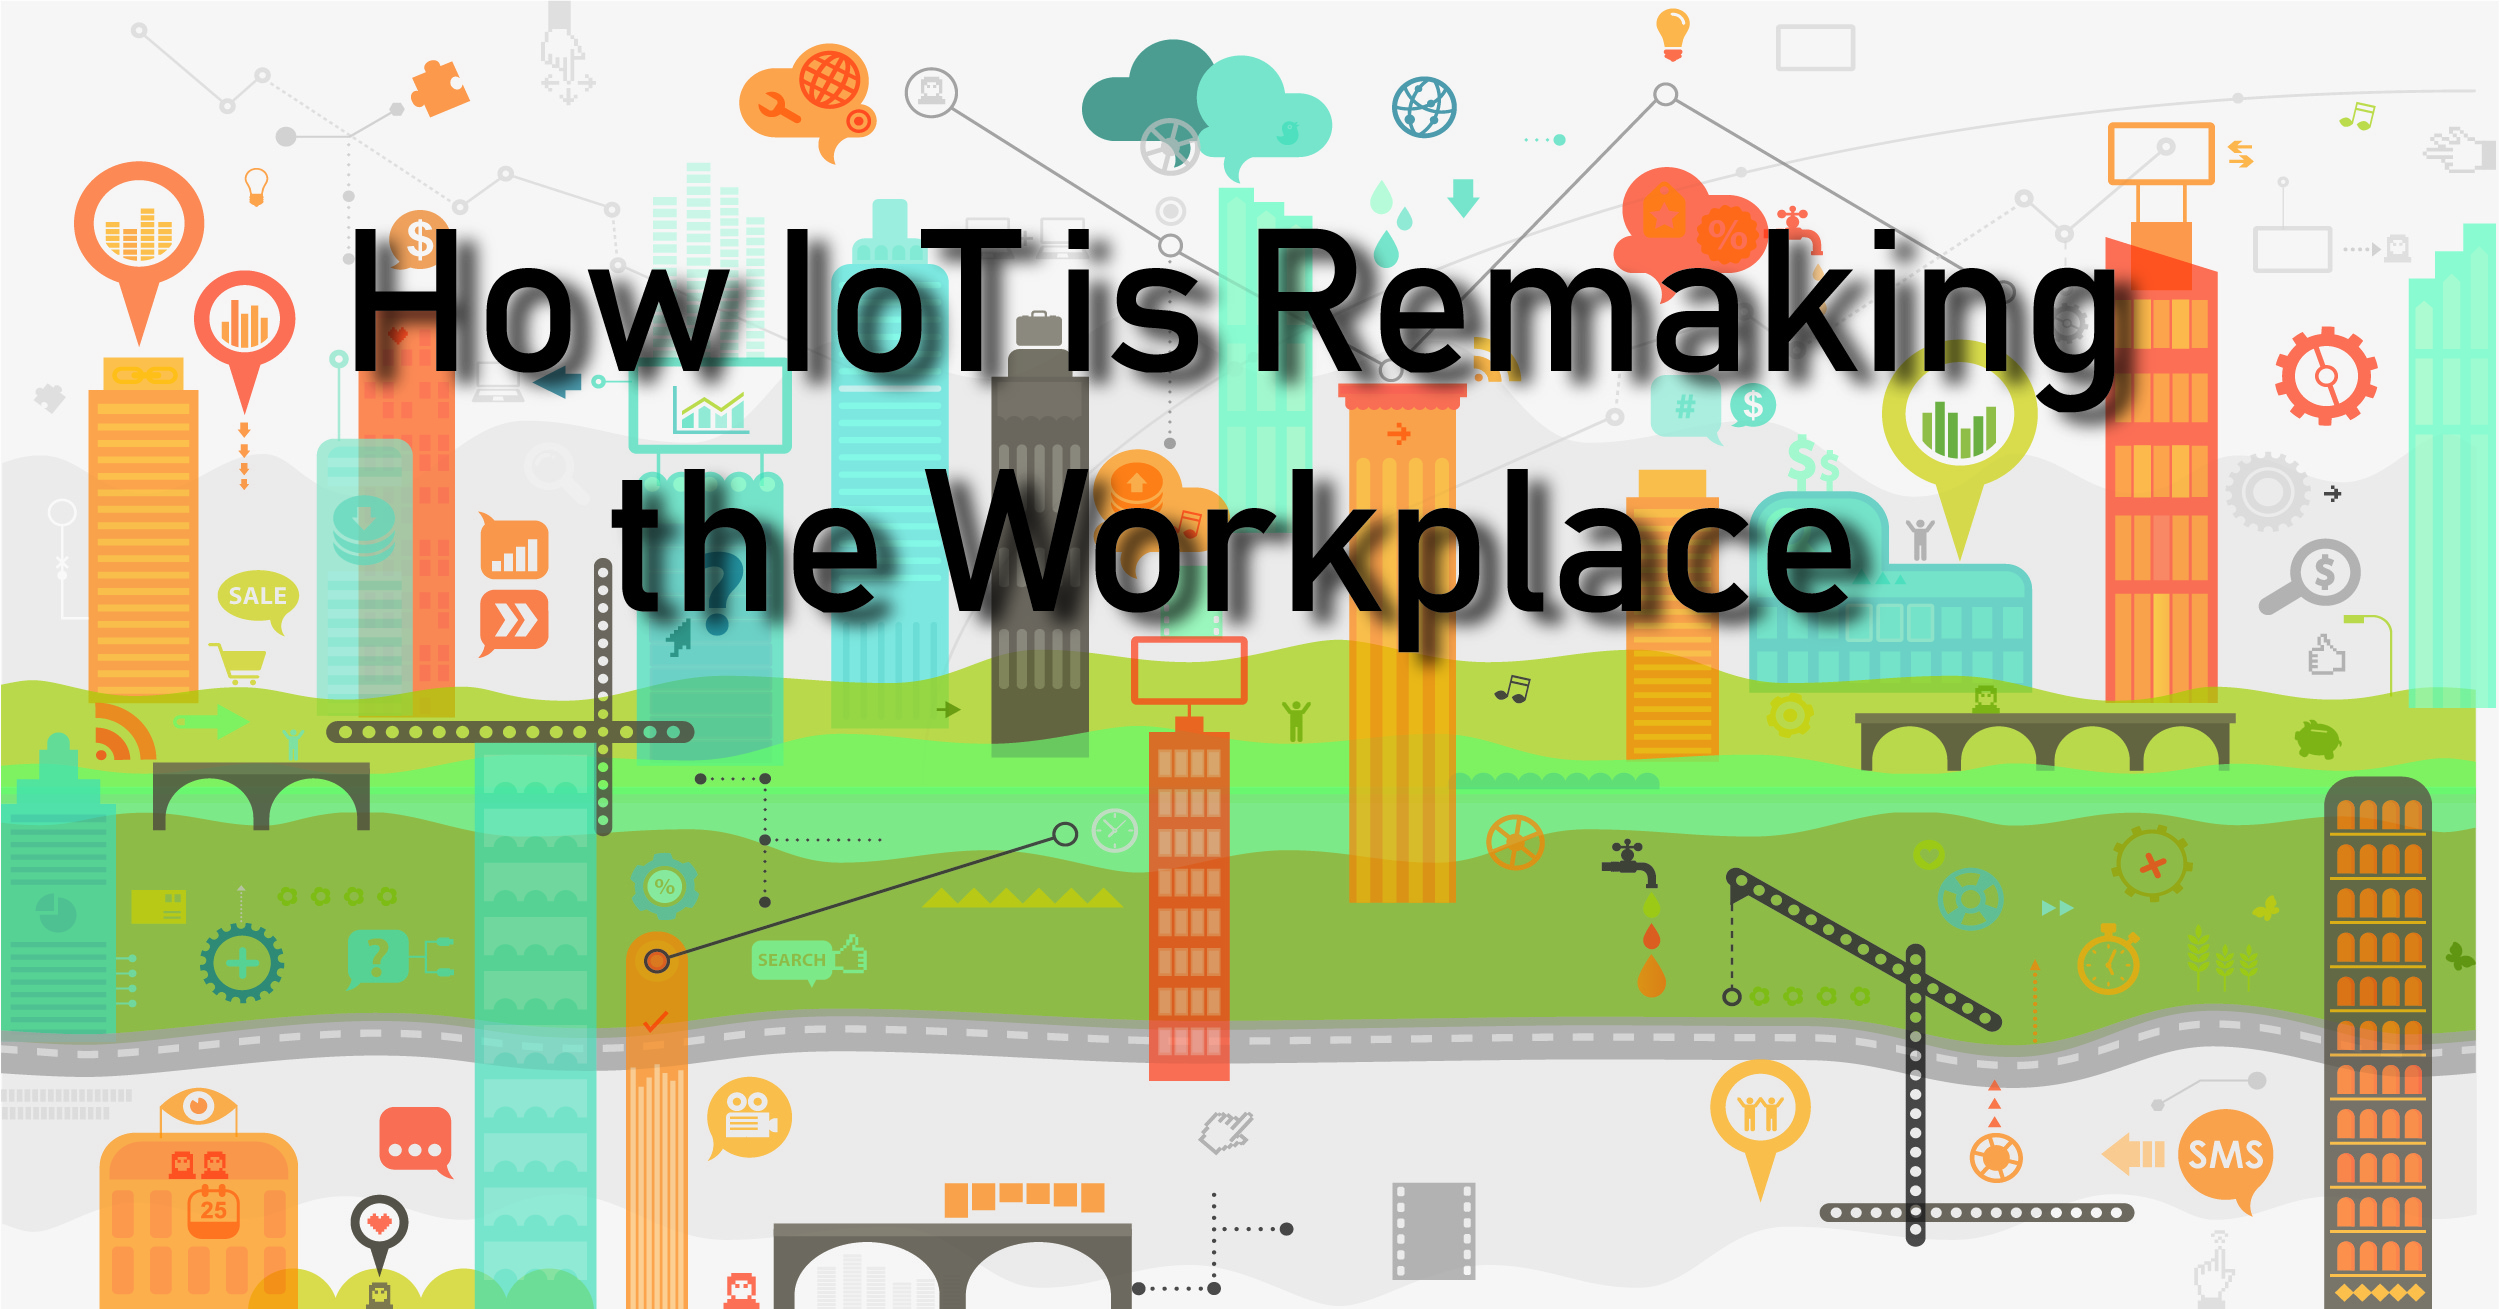 How IoT is Remaking the Workplace